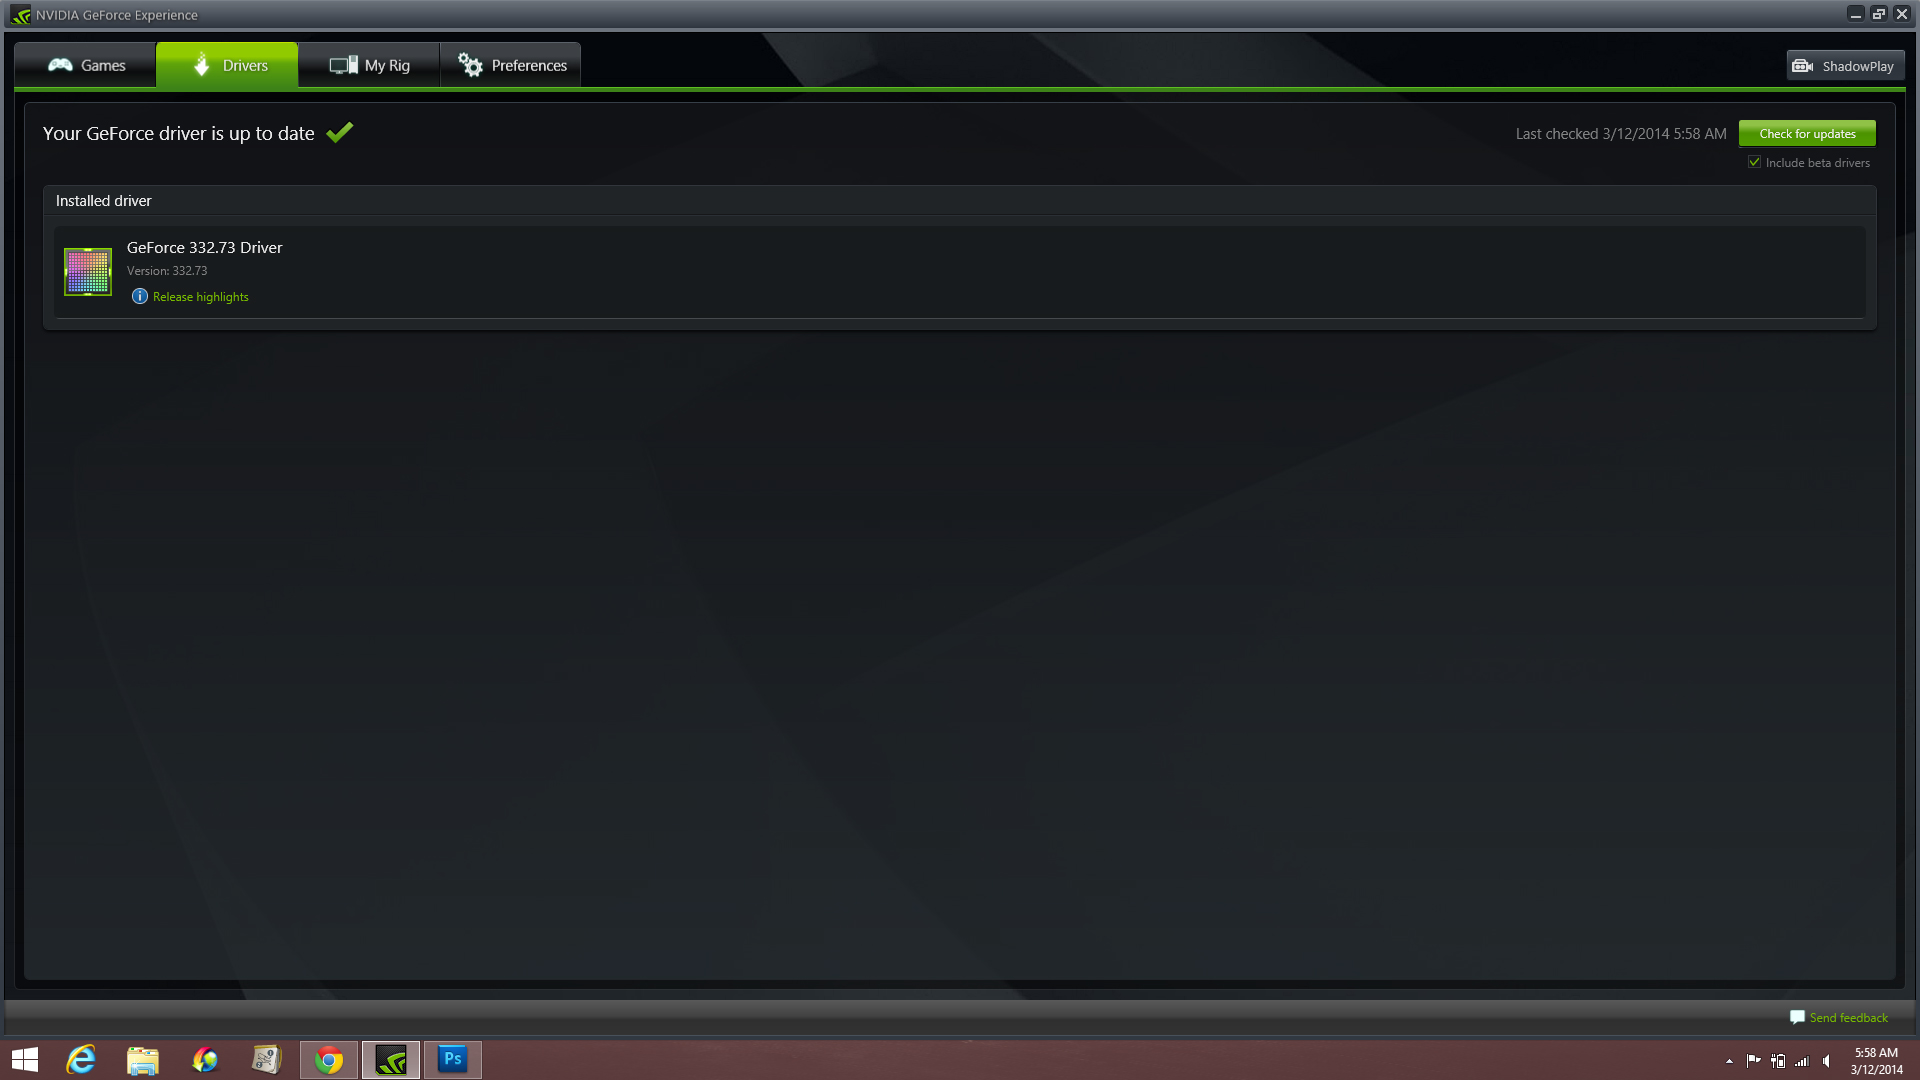 The driver update feature on Nvidia GeForce Experience